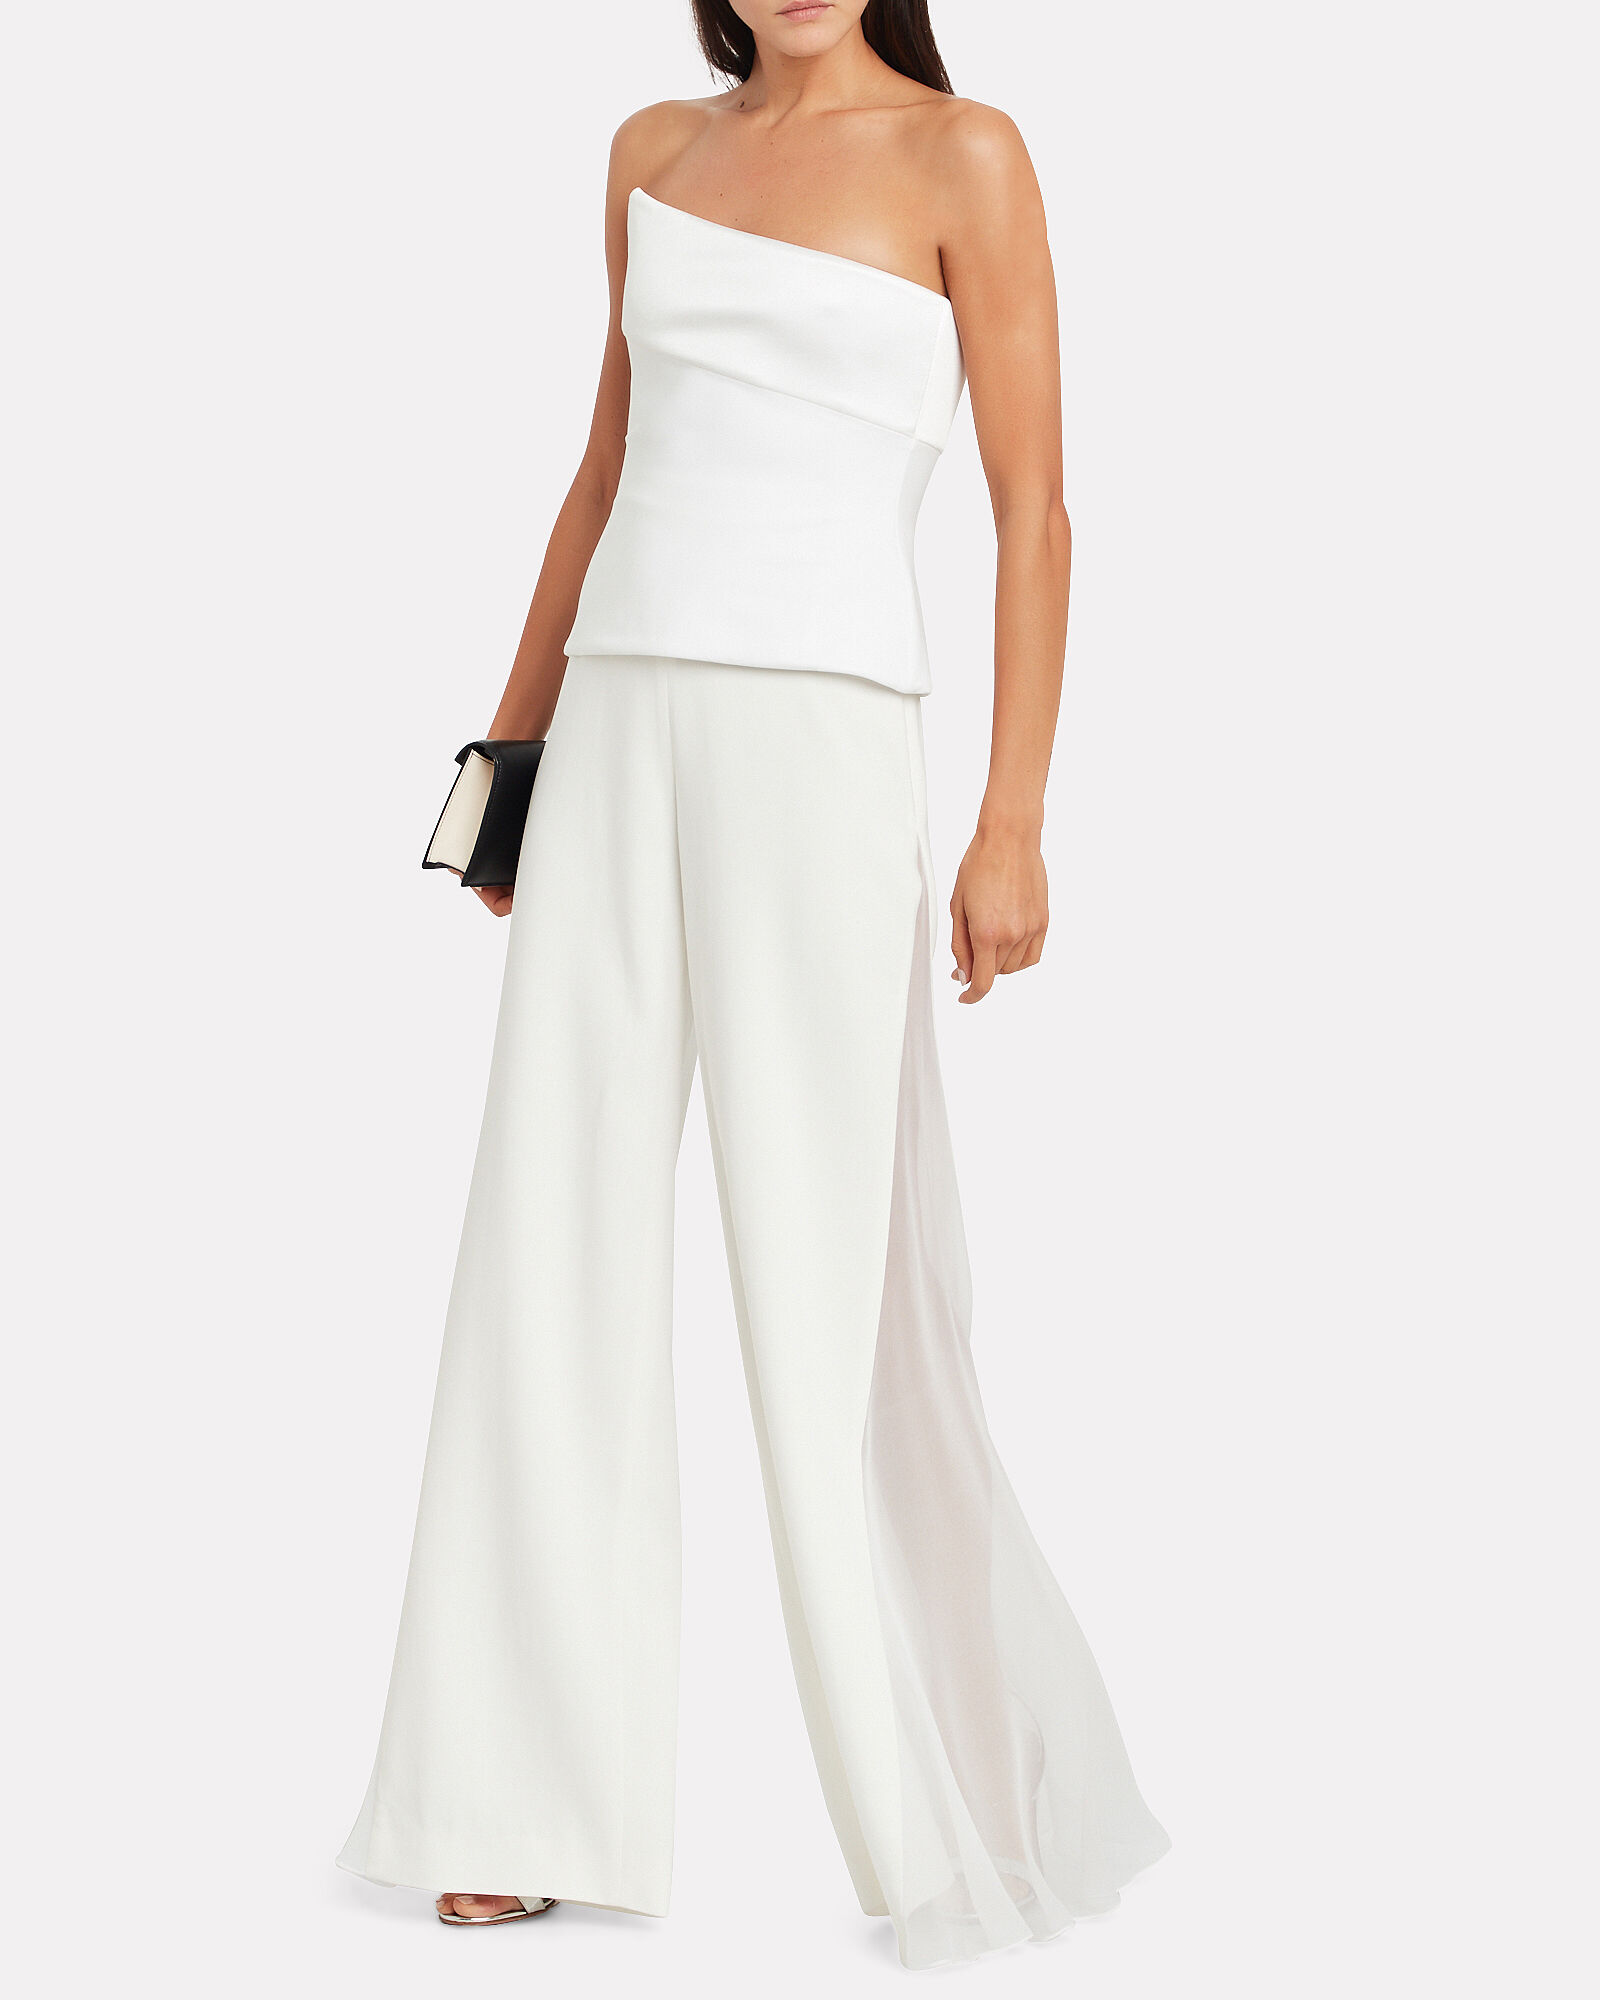 Liquid Crepe Wide Leg Pants, WHITE, hi-res